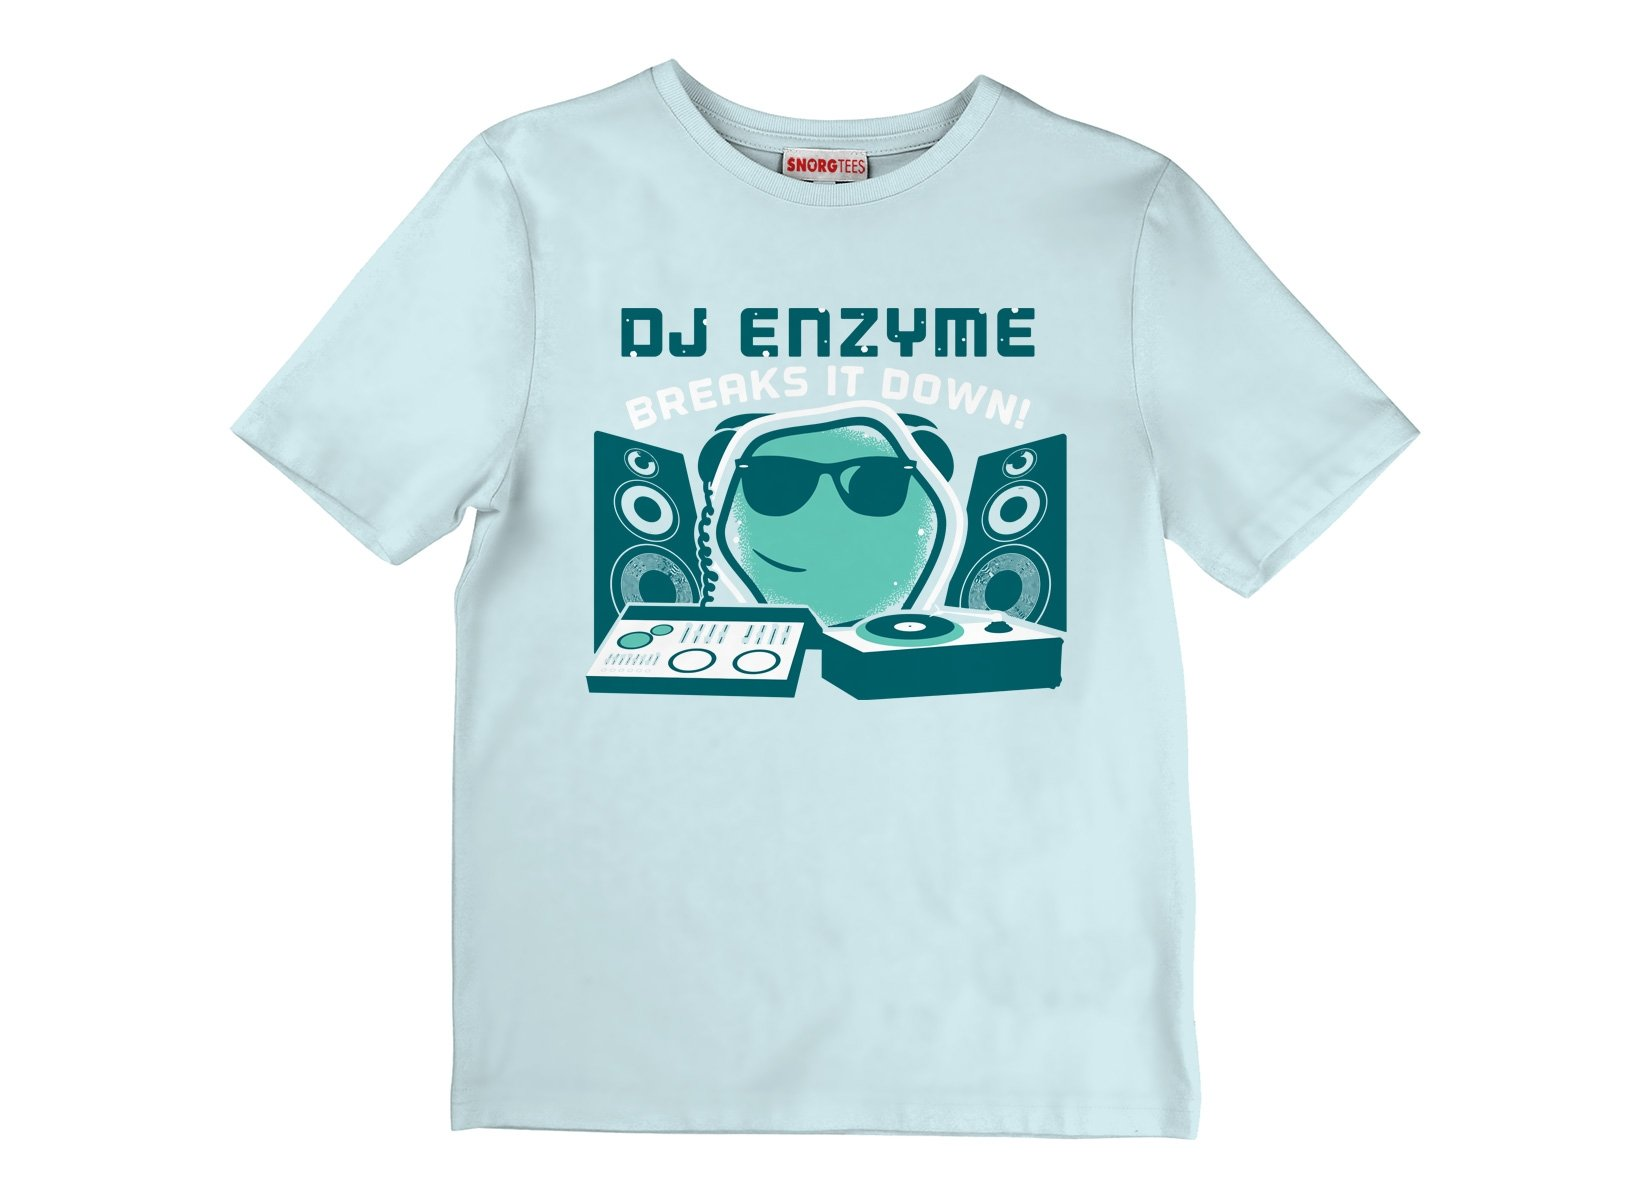 DJ Enzyme on Kids T-Shirt